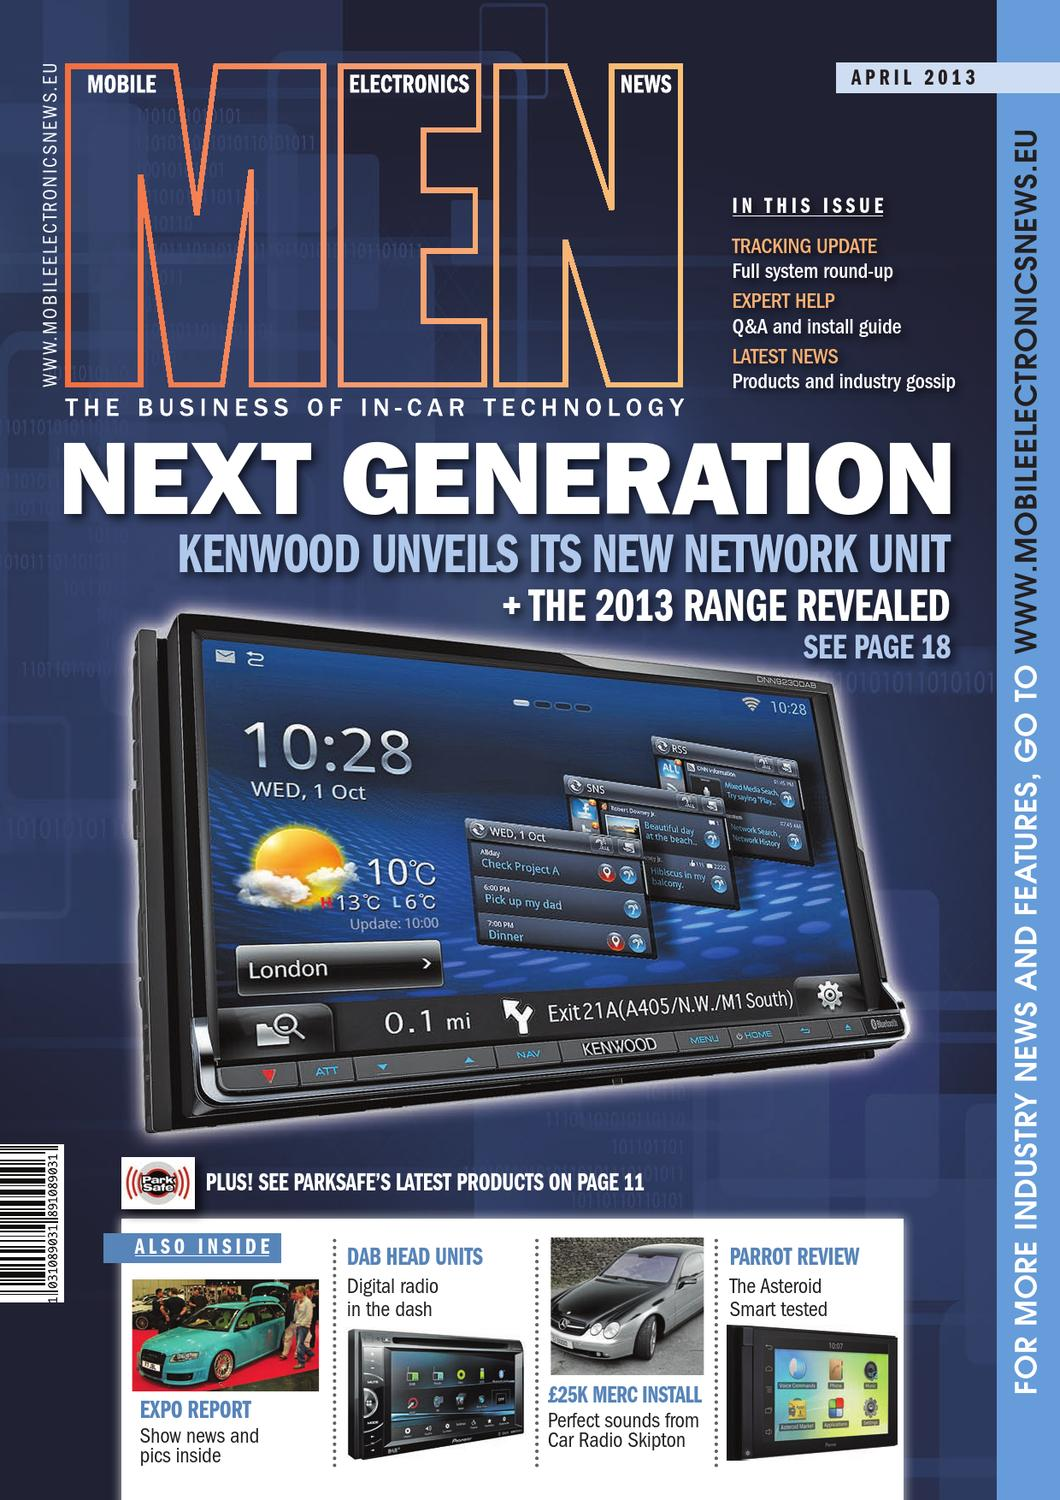 Mobile Electronics News April 2013 By Webwax Issuu Kenwood Car Audio Touch Screen In Addition Monte Carlo Wiring Diagram